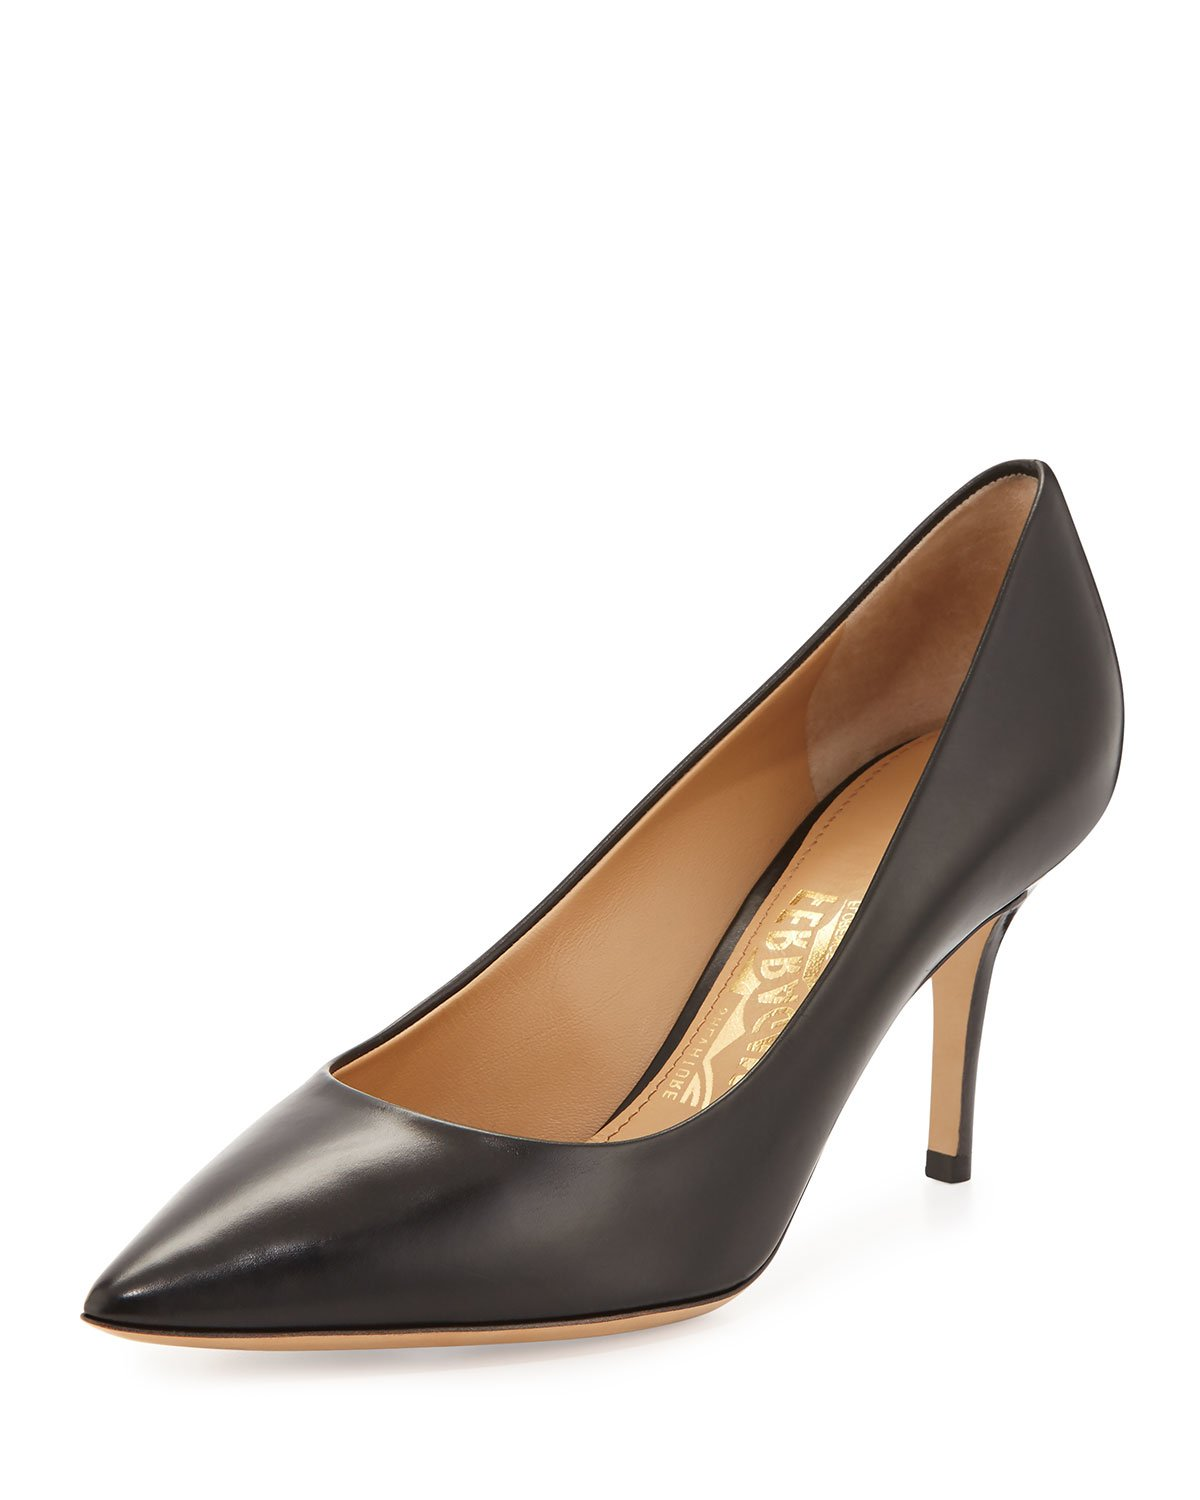 Men's Ferragamo Shoes There aren't many self esteem boosters that equate to the confidence you get when you're strutting down the street in a shining brand new pair of shoes. You can go one step further and make yourself really stand out with a pair of Ferragamo shoes.